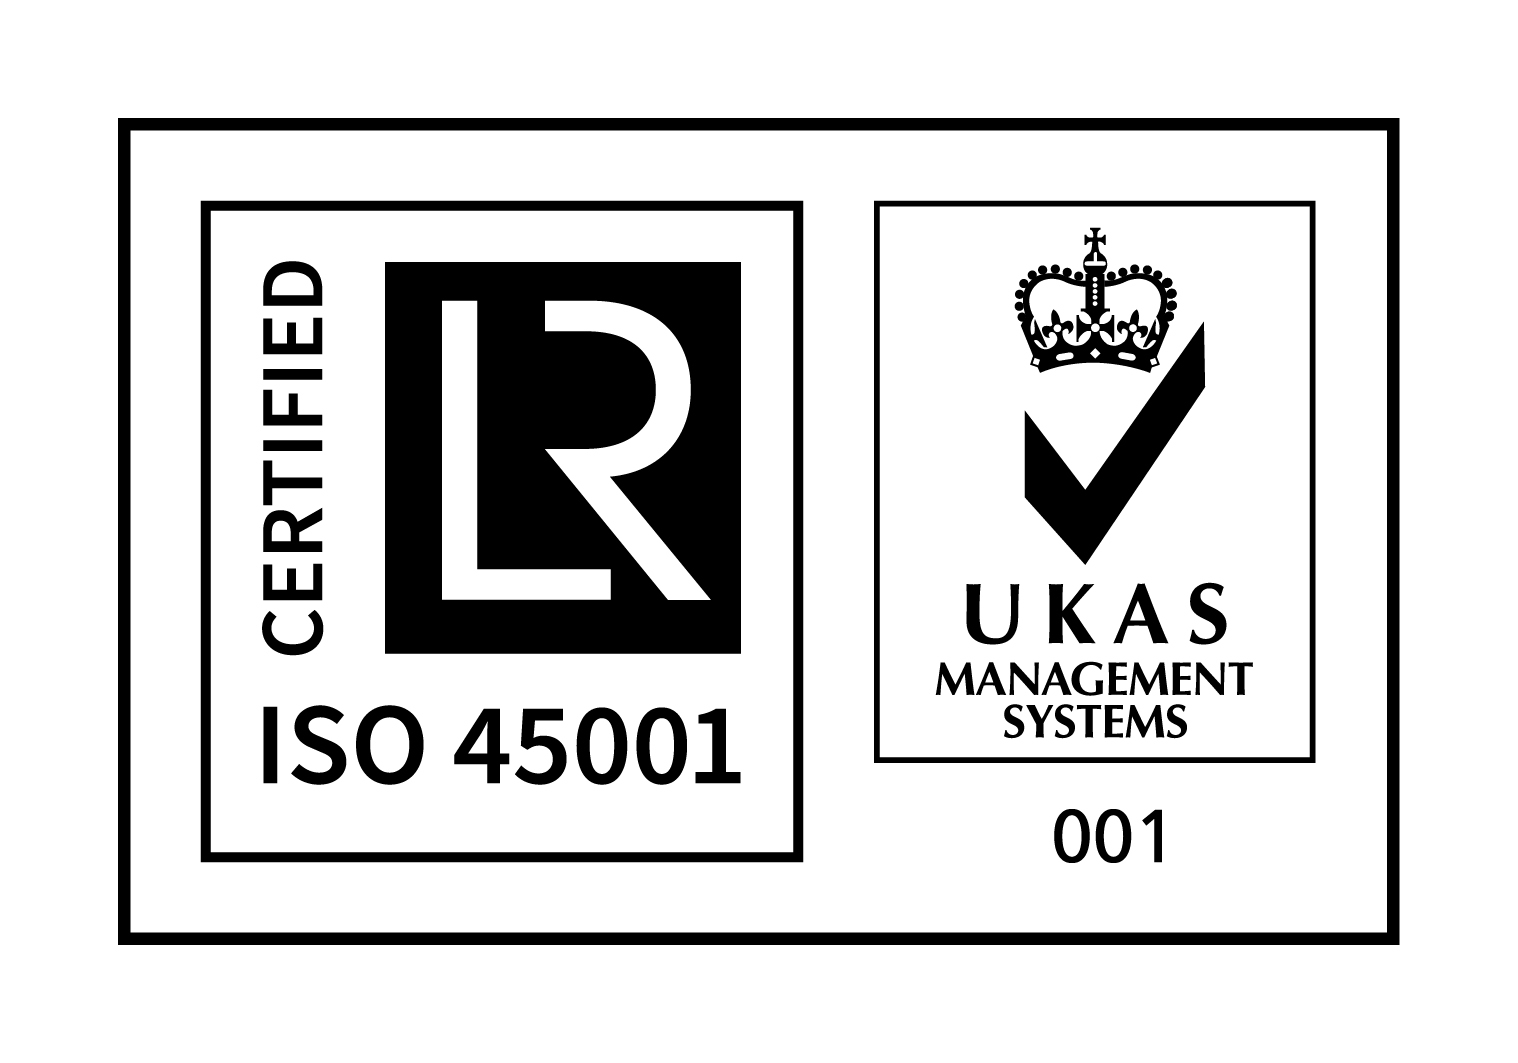 UKAS AND ISO 45001